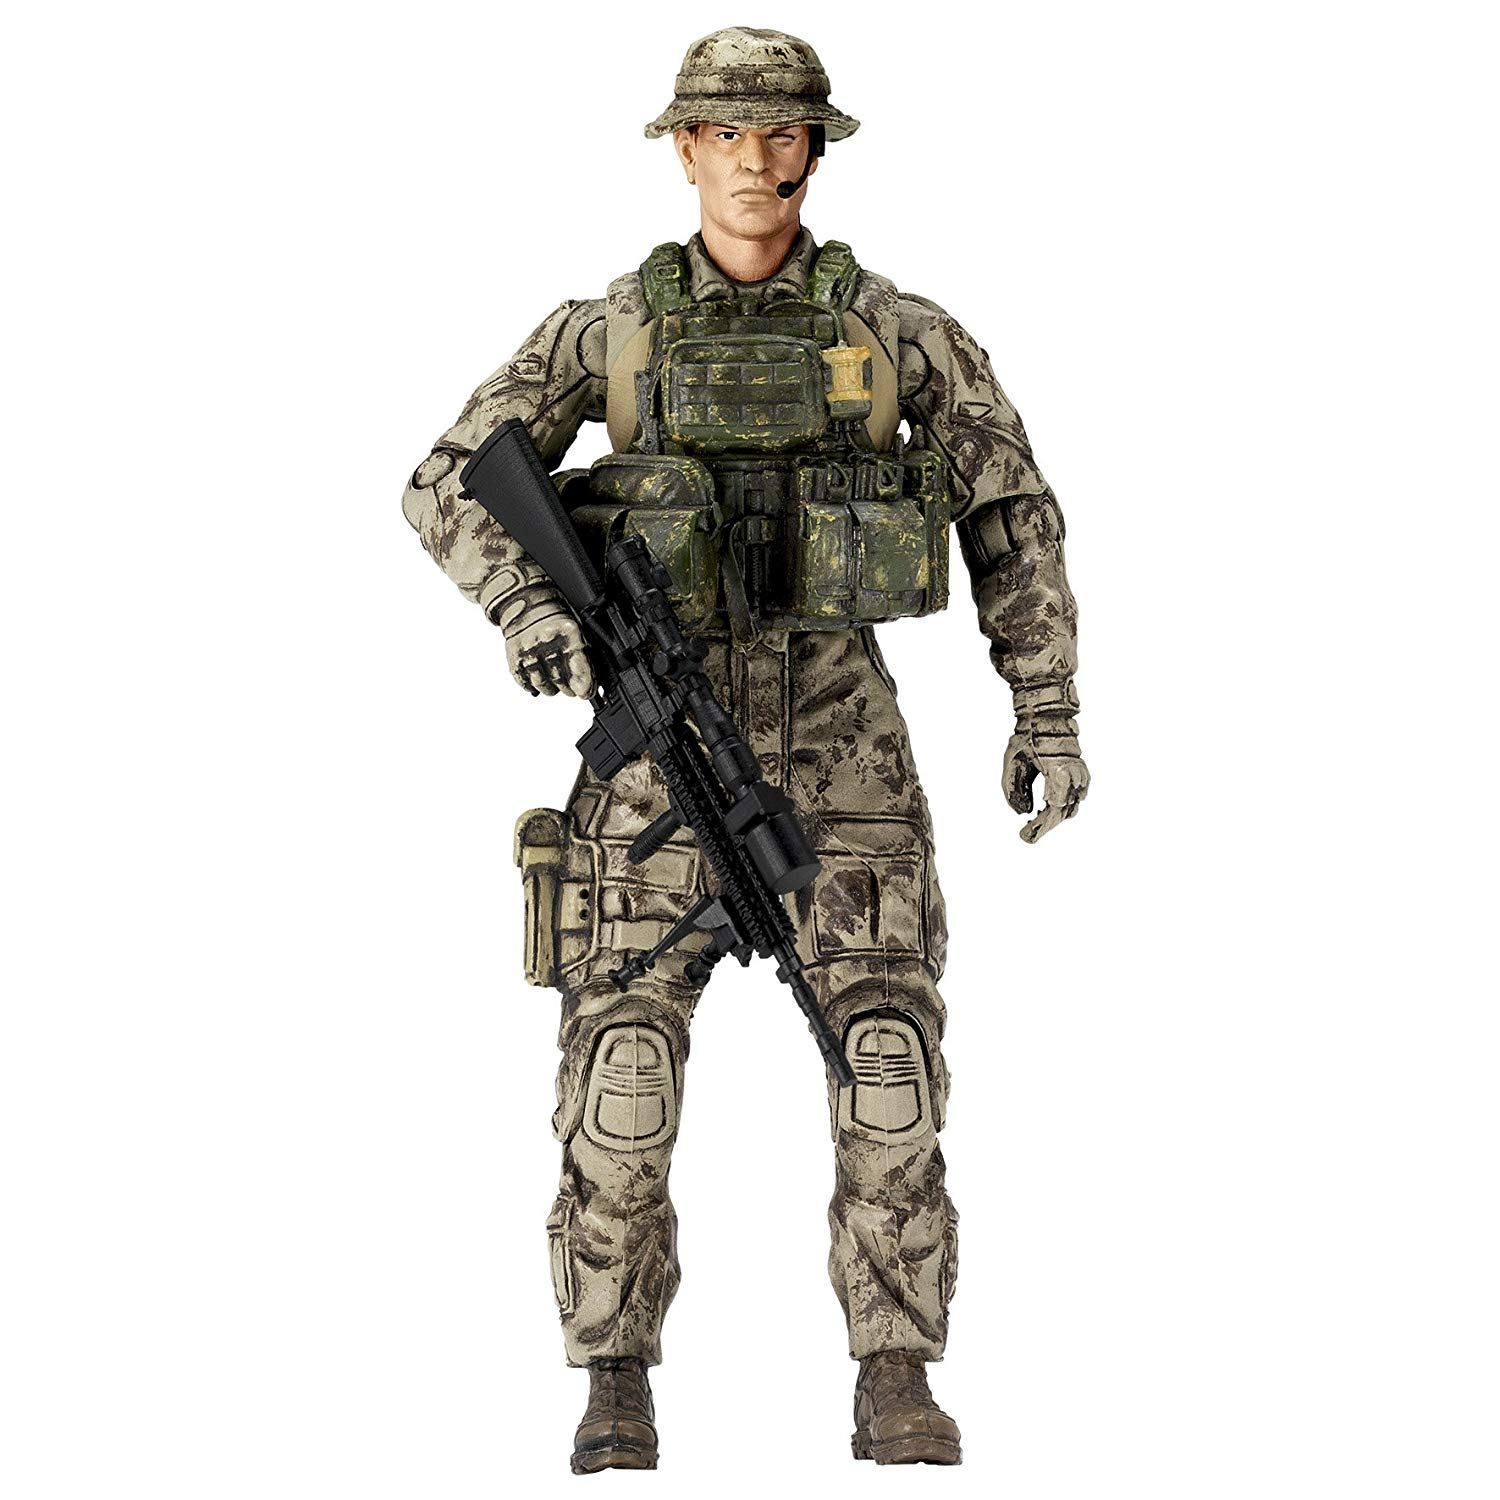 Set Toys Military Toys For Children